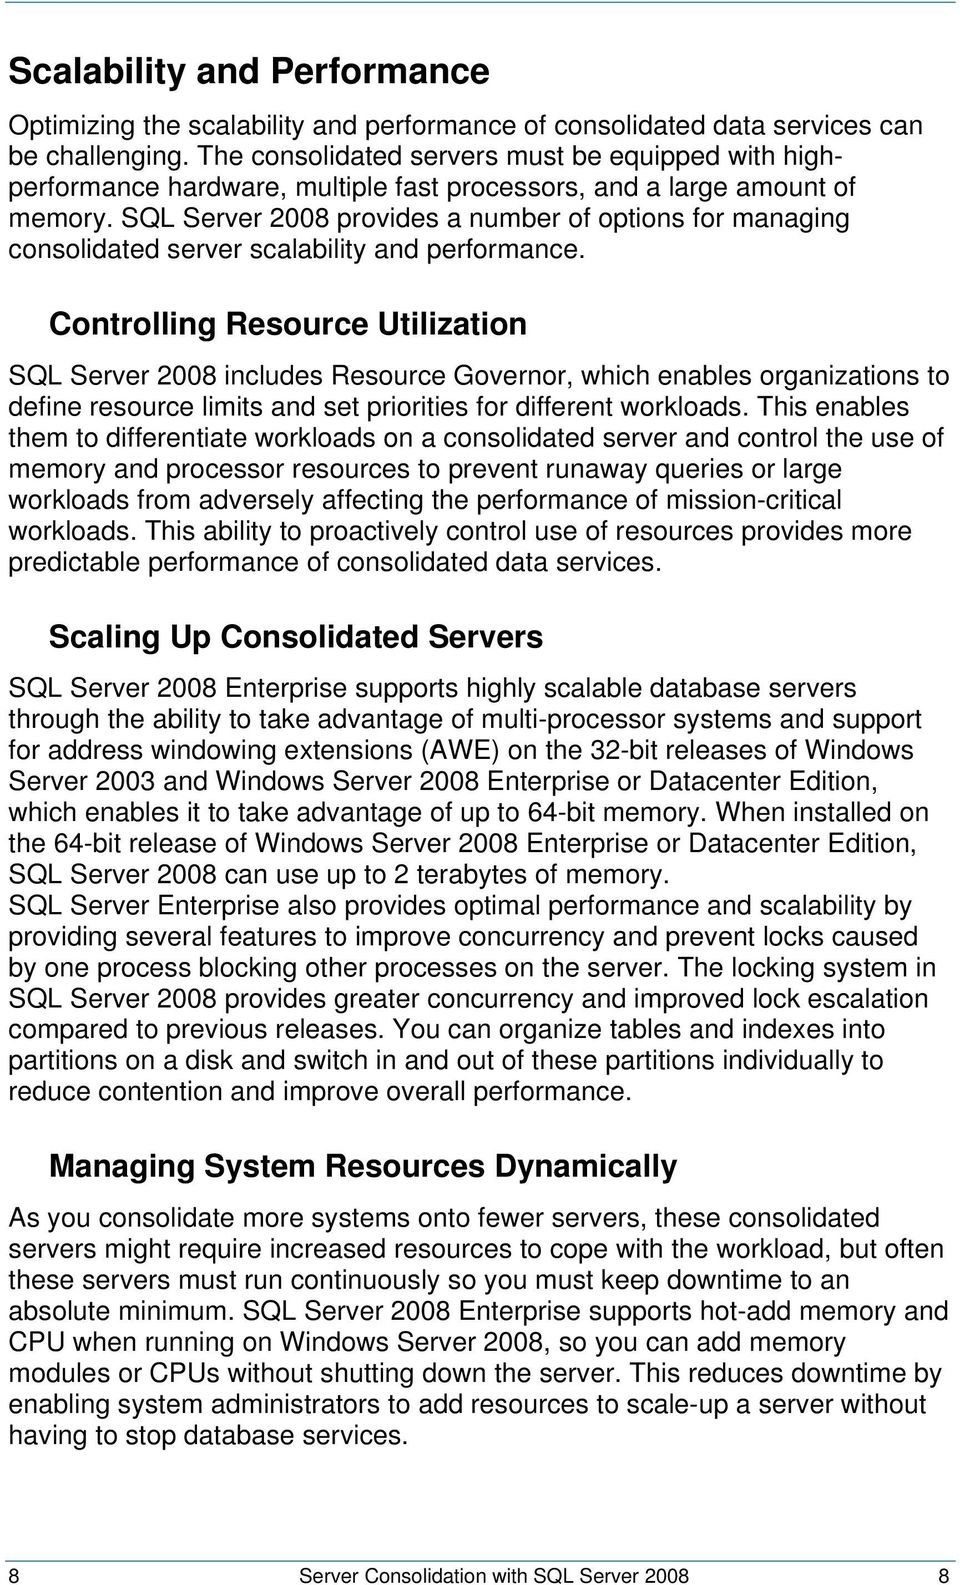 SQL Server 2008 provides a number of options for managing consolidated server scalability and performance.